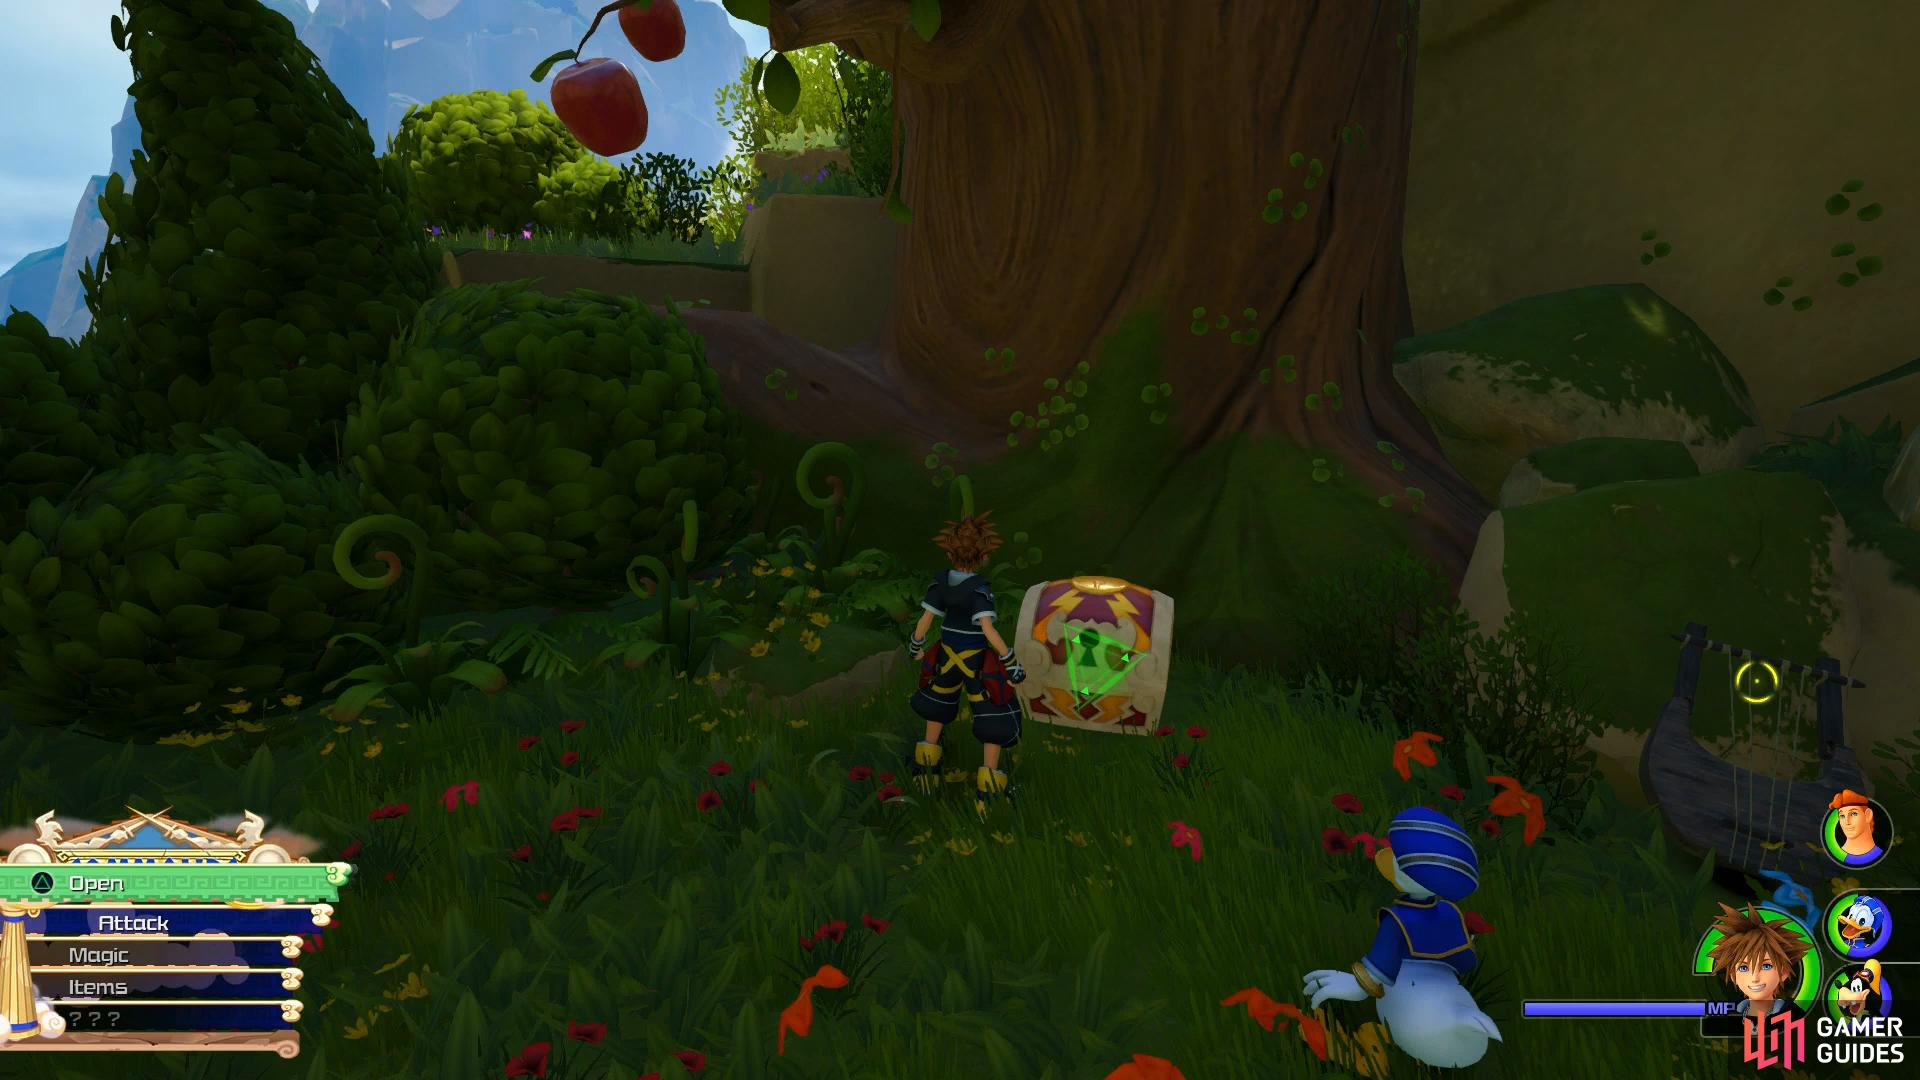 Look under the apple tree for this chest.